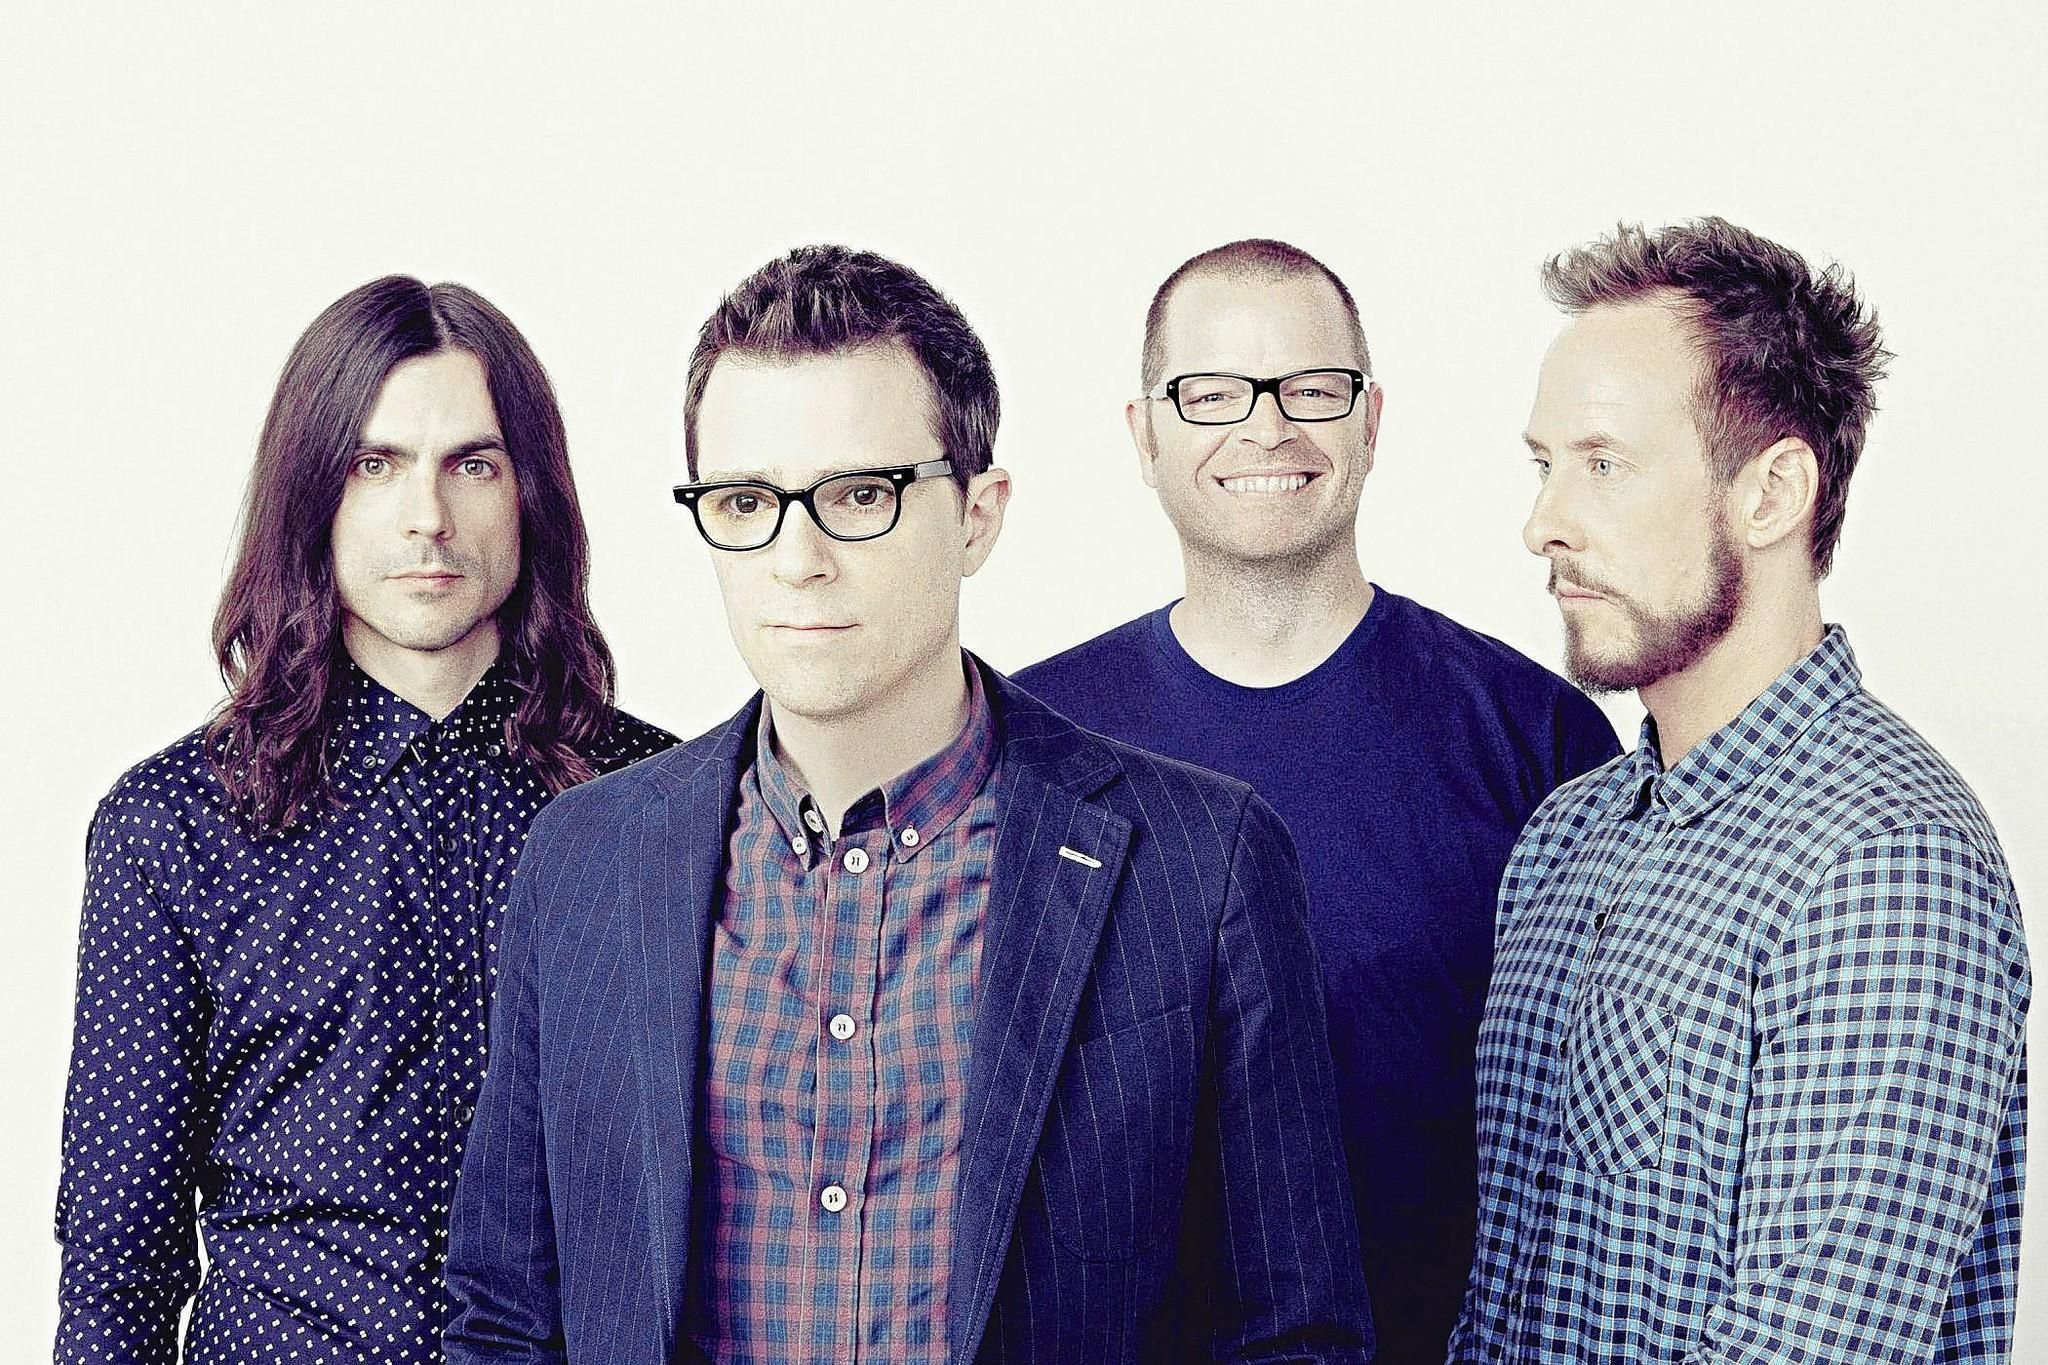 Weezer is an American rock band formed in Los Angeles in 1992 consisting of Rivers Cuomo (lead vocals, lead guitar), Patrick Wilson (drums), Brian Bell (rhythm guitar, backing vocals, keyboards), and Scott Shriner (bass, backing vocals).Weezer is an American rock band formed in Los Angeles in 1992 consisting of Rivers Cuomo (lead vocals, lead guitar), Patrick Wilson (drums), Brian Bell (rhythm guitar, backing vocals, keyboards), and Scott Shriner (bass, backing vocals).